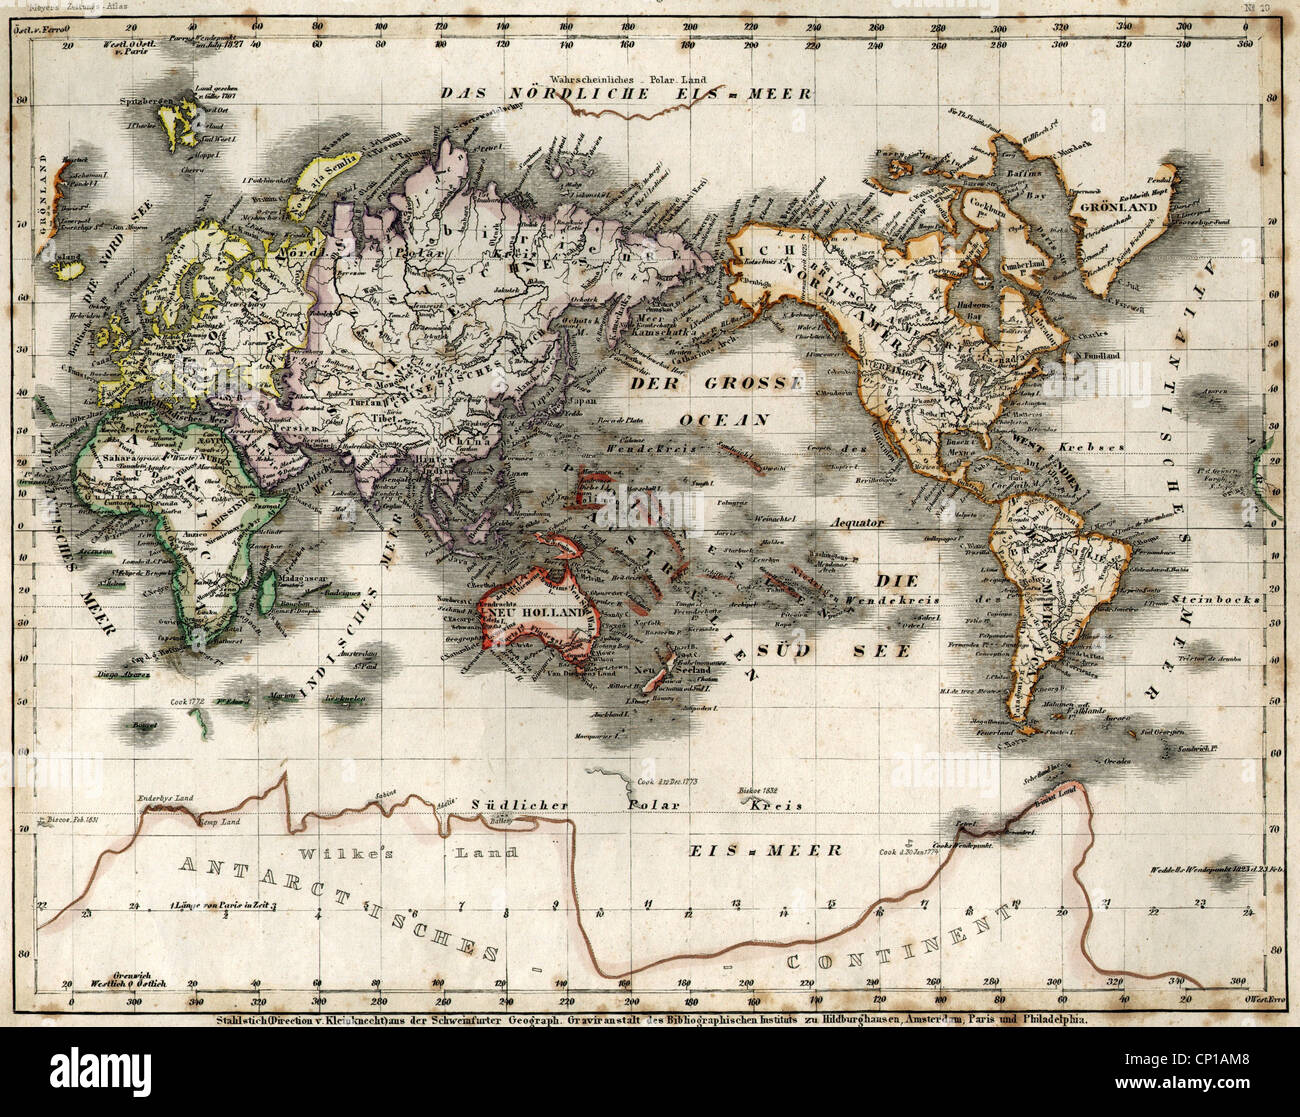 Cartography World Map Australocentric Map Steel Engraving Stock